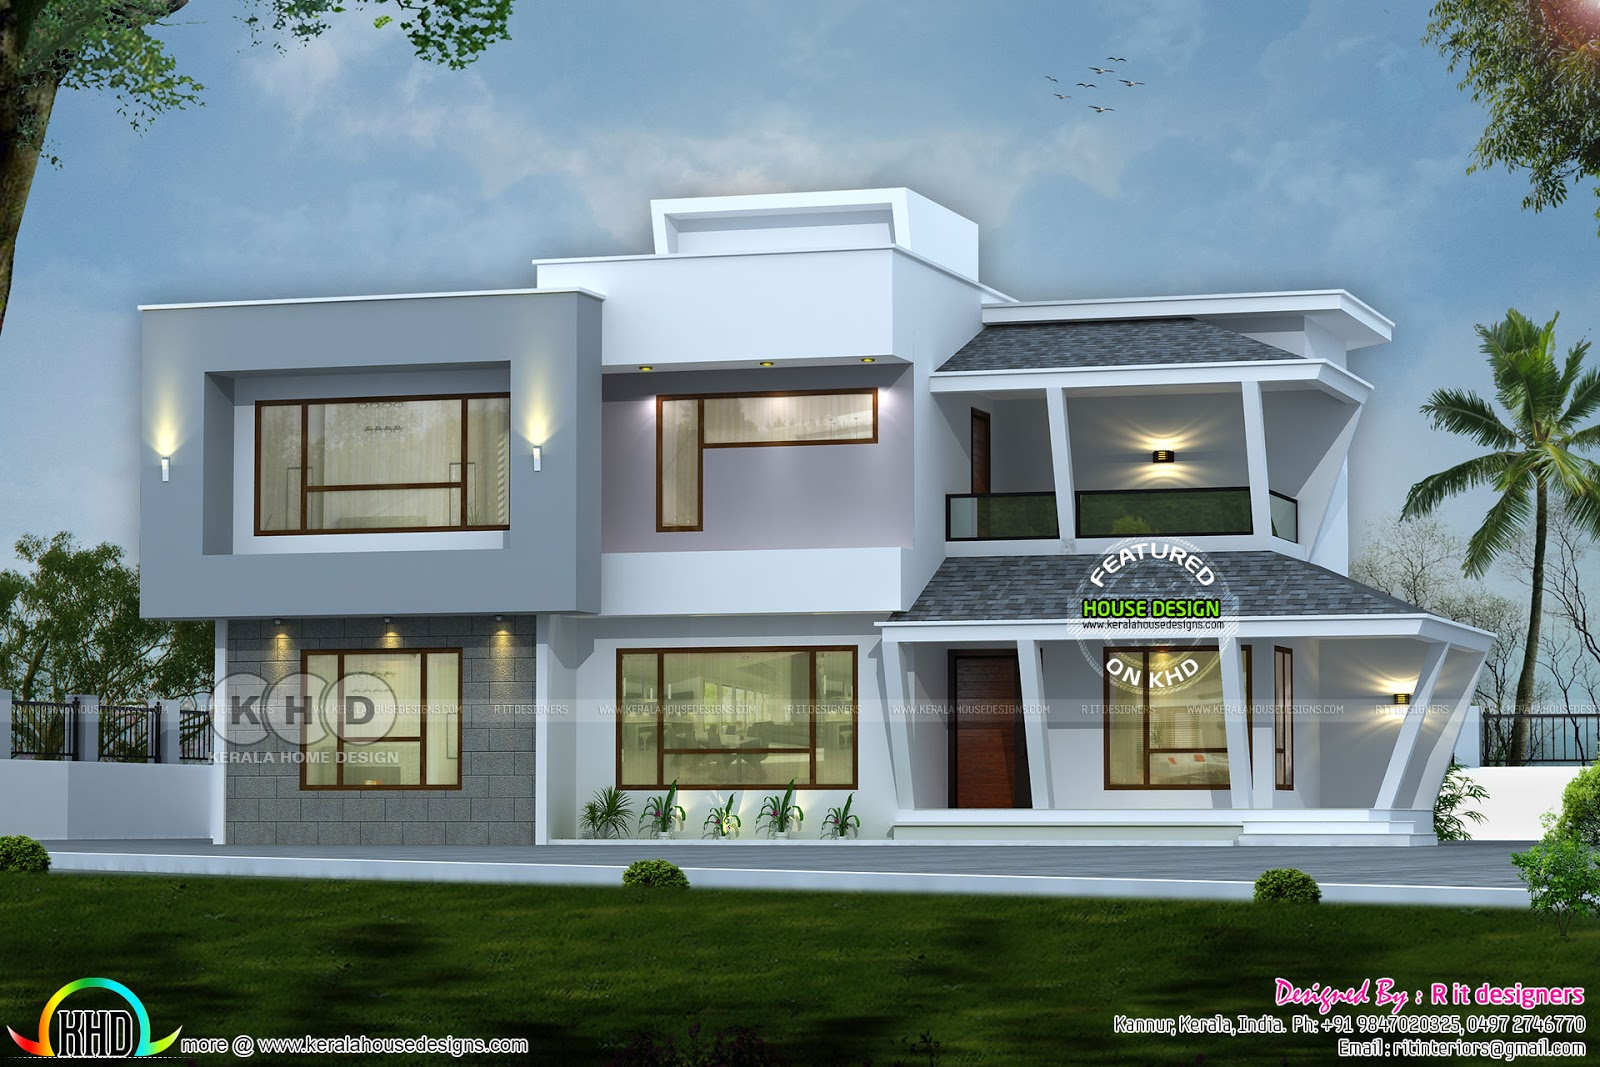 2892 sq-ft modern house with construction cost | Kerala home design on house construction terms, house construction management, house construction methods, house construction procedures, house energy, house construction programs, house development, house utilities, house insurance, house construction financing, house construction materials, house construction schedule, house construction specifications, house contracts, house construction process, house equipment, house construction projects, house taxes, house building, house construction permits,